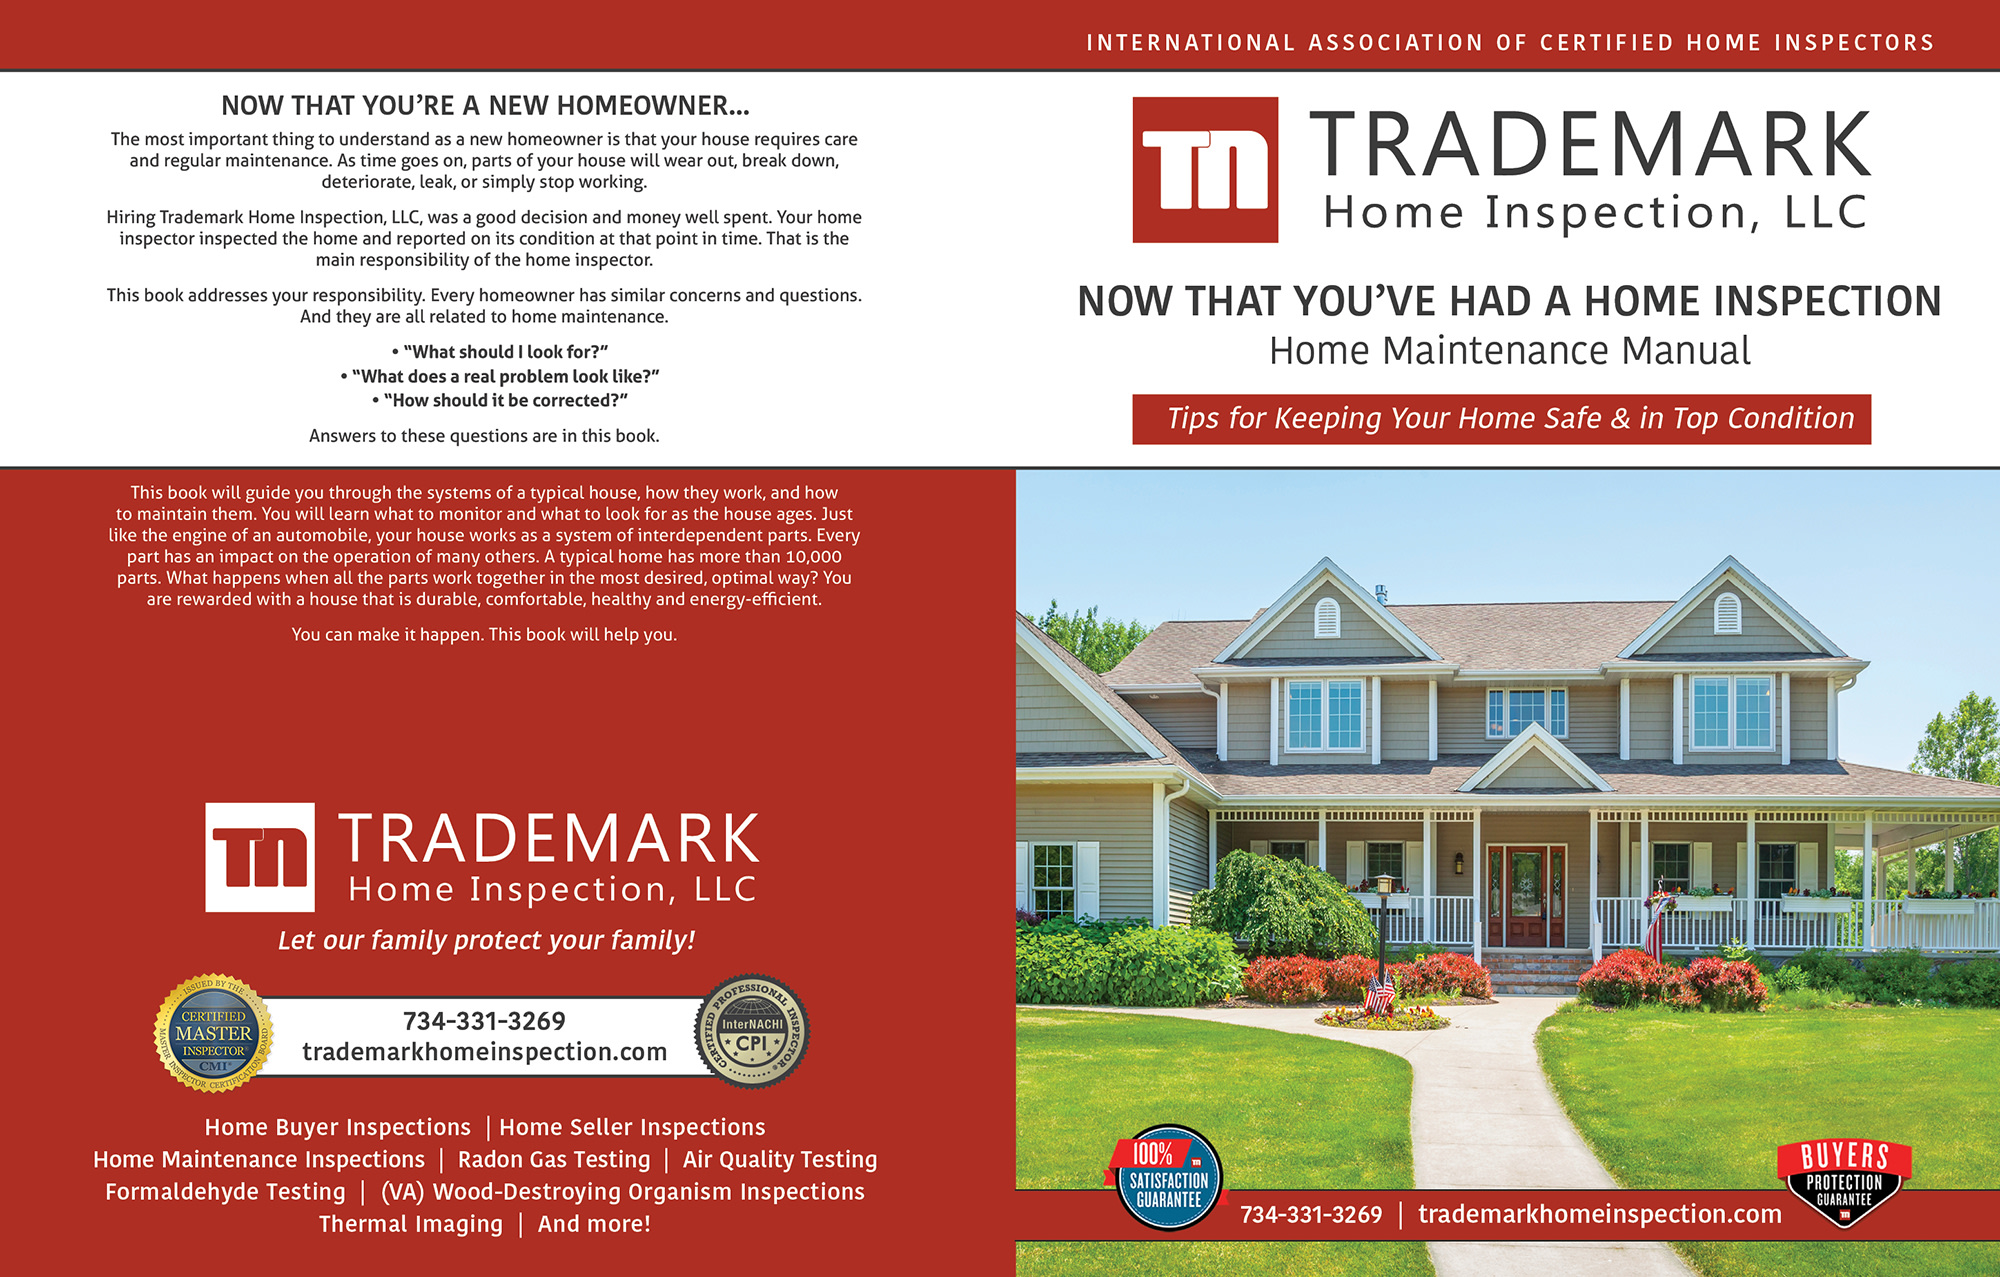 Trademark Home Inspections book